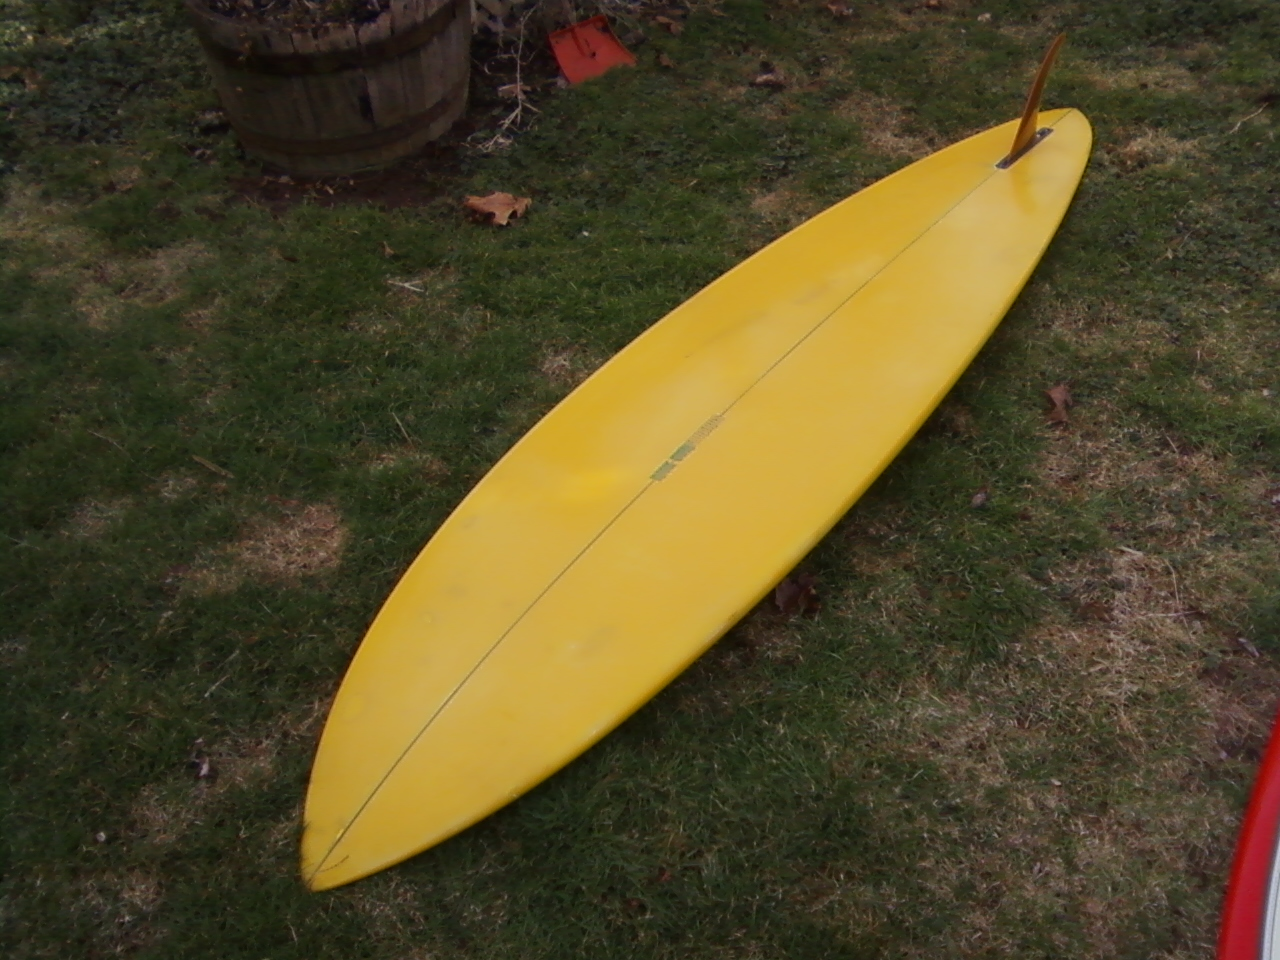 Phil Becker Rick Surfboard